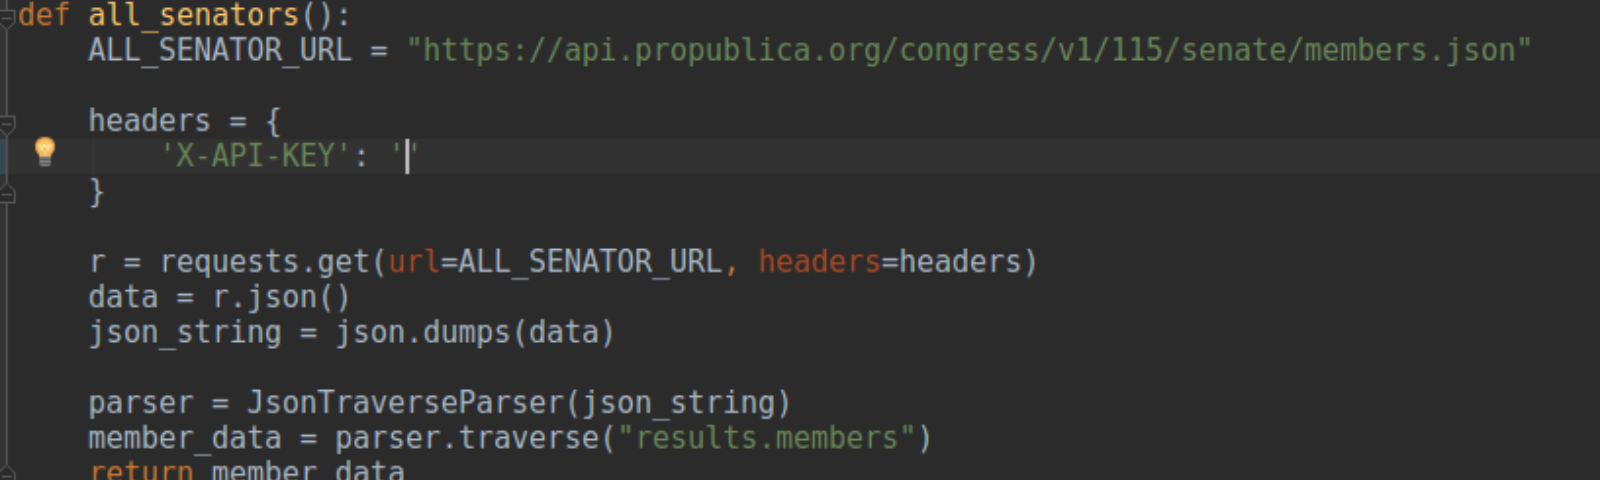 Python: Requesting and parsing data from API - Tom Marler